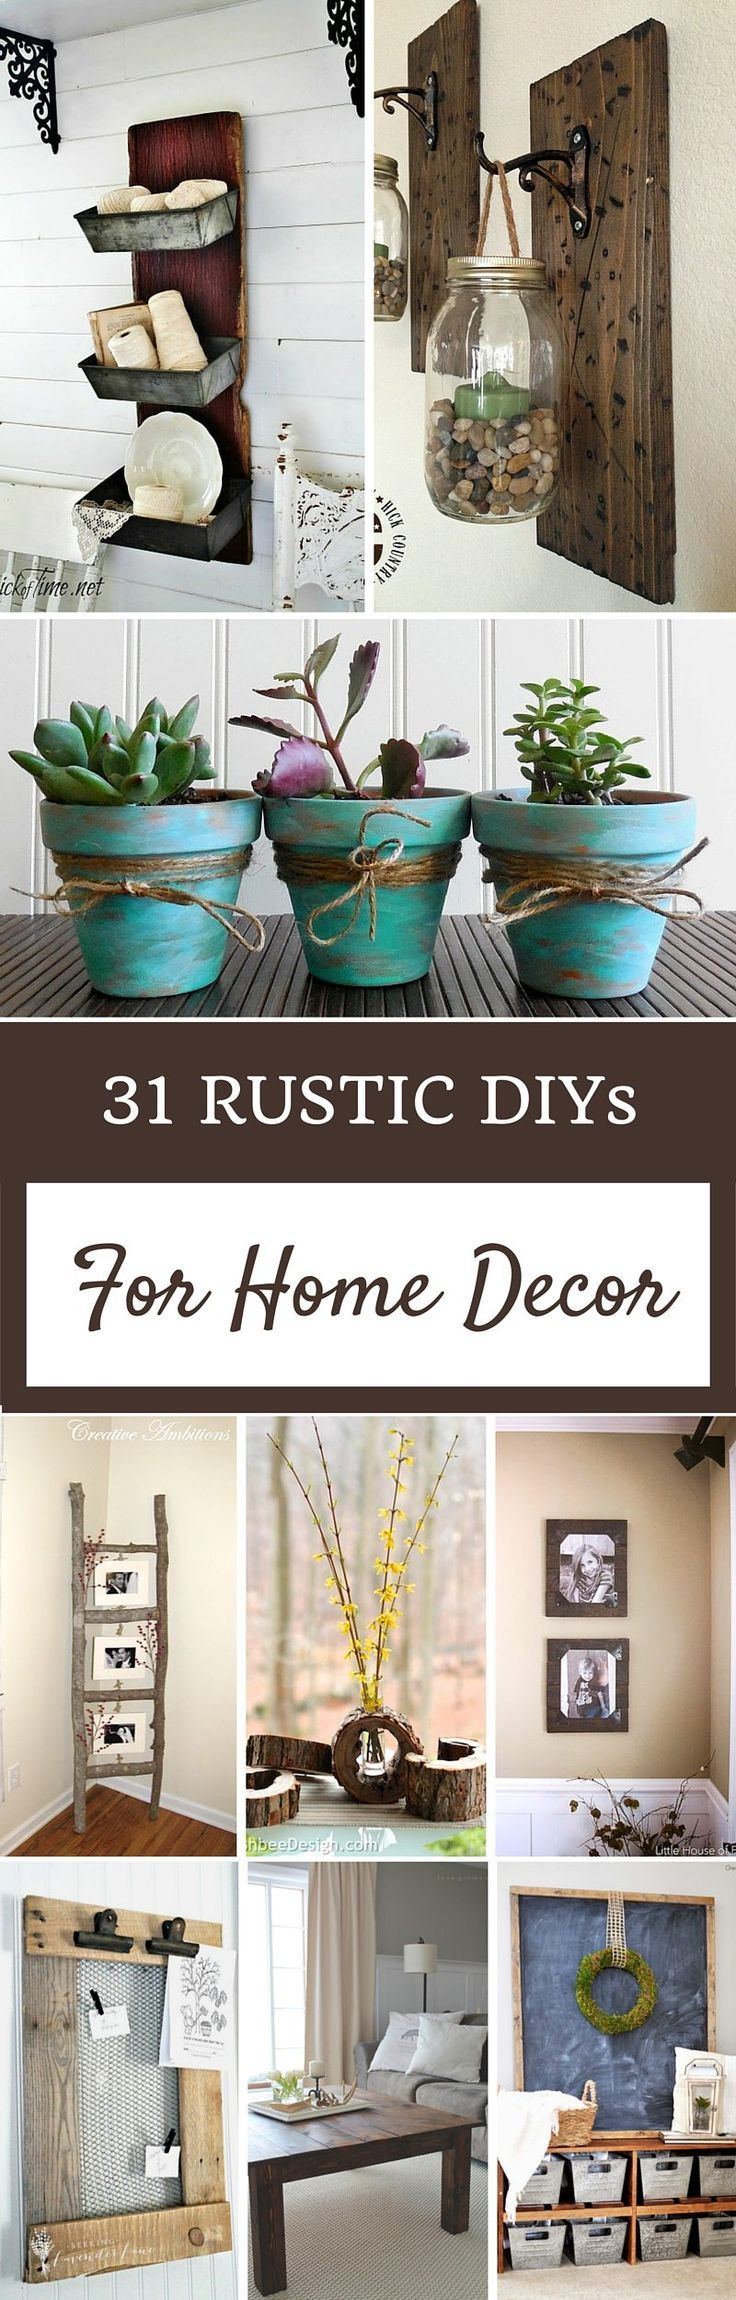 25 Best Ideas About Cool Home Decor On Pinterest Cool Homes Cheap Room Decor And Cheap Home Decor